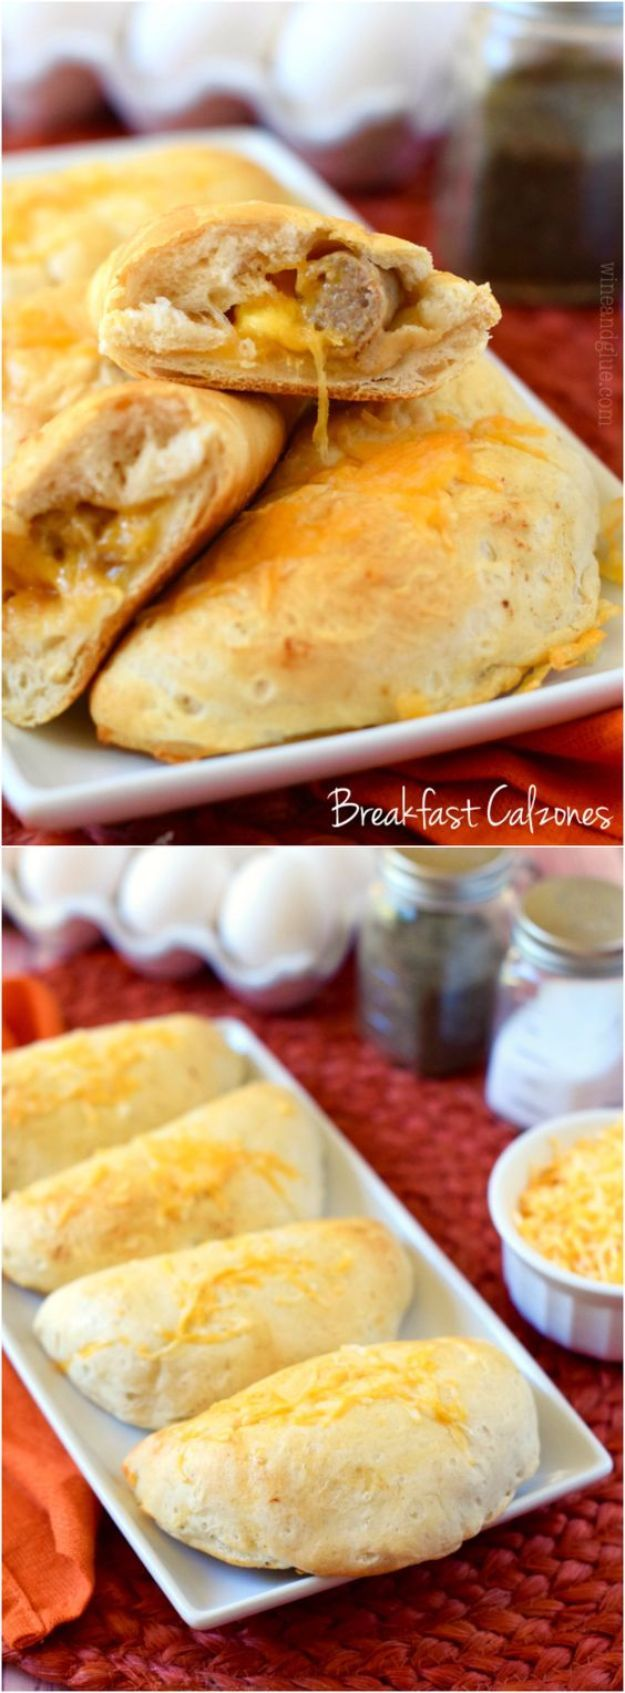 Best Canned Biscuit Recipes - Breakfast Calzones - Cool DIY Recipe Ideas You Can Make With A Can of Biscuits - Easy Breakfast, Lunch, Dinner and Desserts You Can Make From Pillsbury Pull Apart Biscuits - Garlic, Sour Cream, Ground Beef, Sweet and Savory, Ideas with Cheese - Delicious Meals on A Budget With Step by Step Tutorials http://diyjoy.com/best-recipes-canned-biscuits